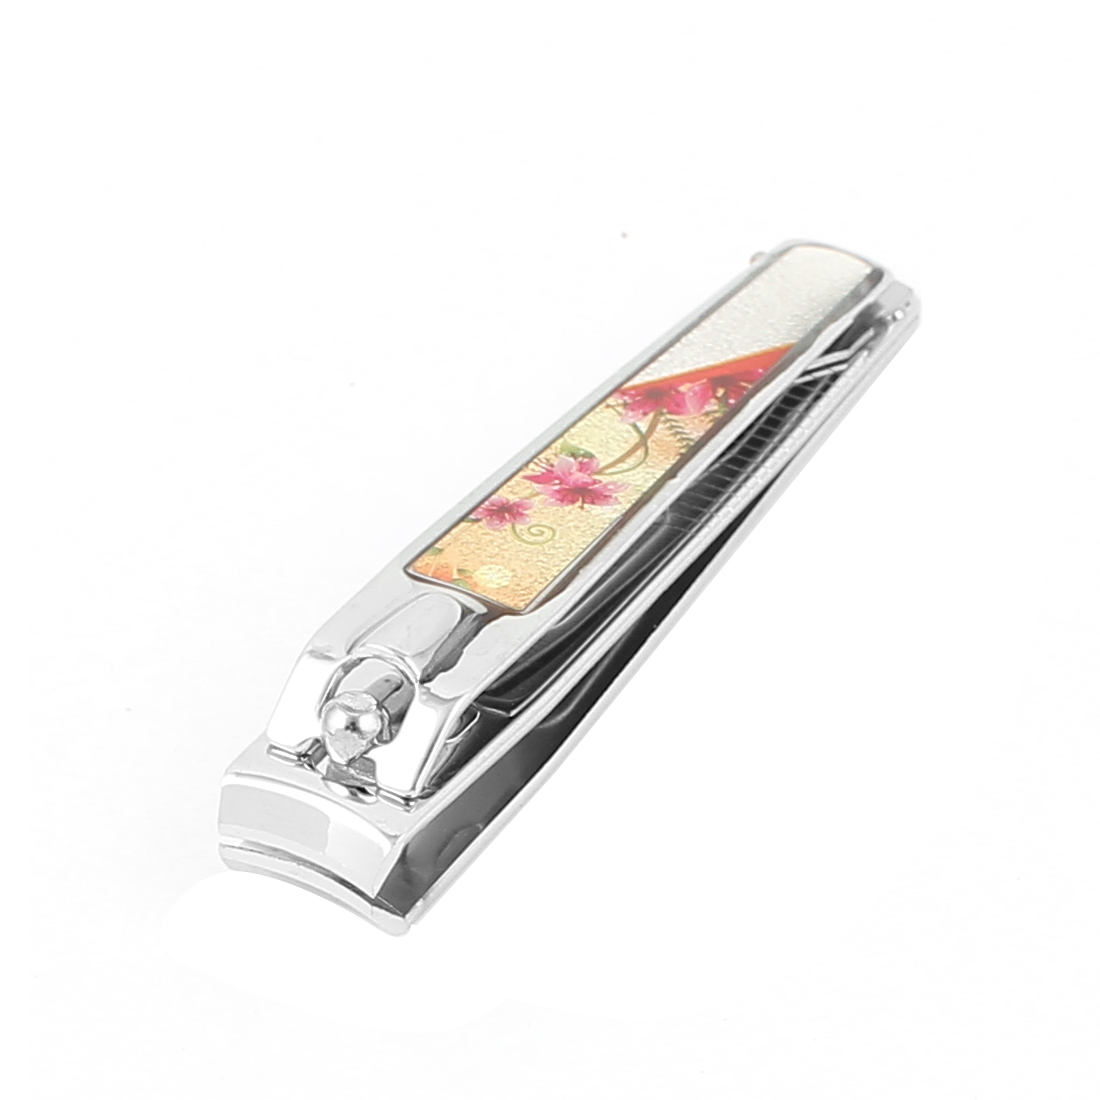 Manicure Pedicure Flowers Details Hand Toe Nail Clipper Cutter Trimmer